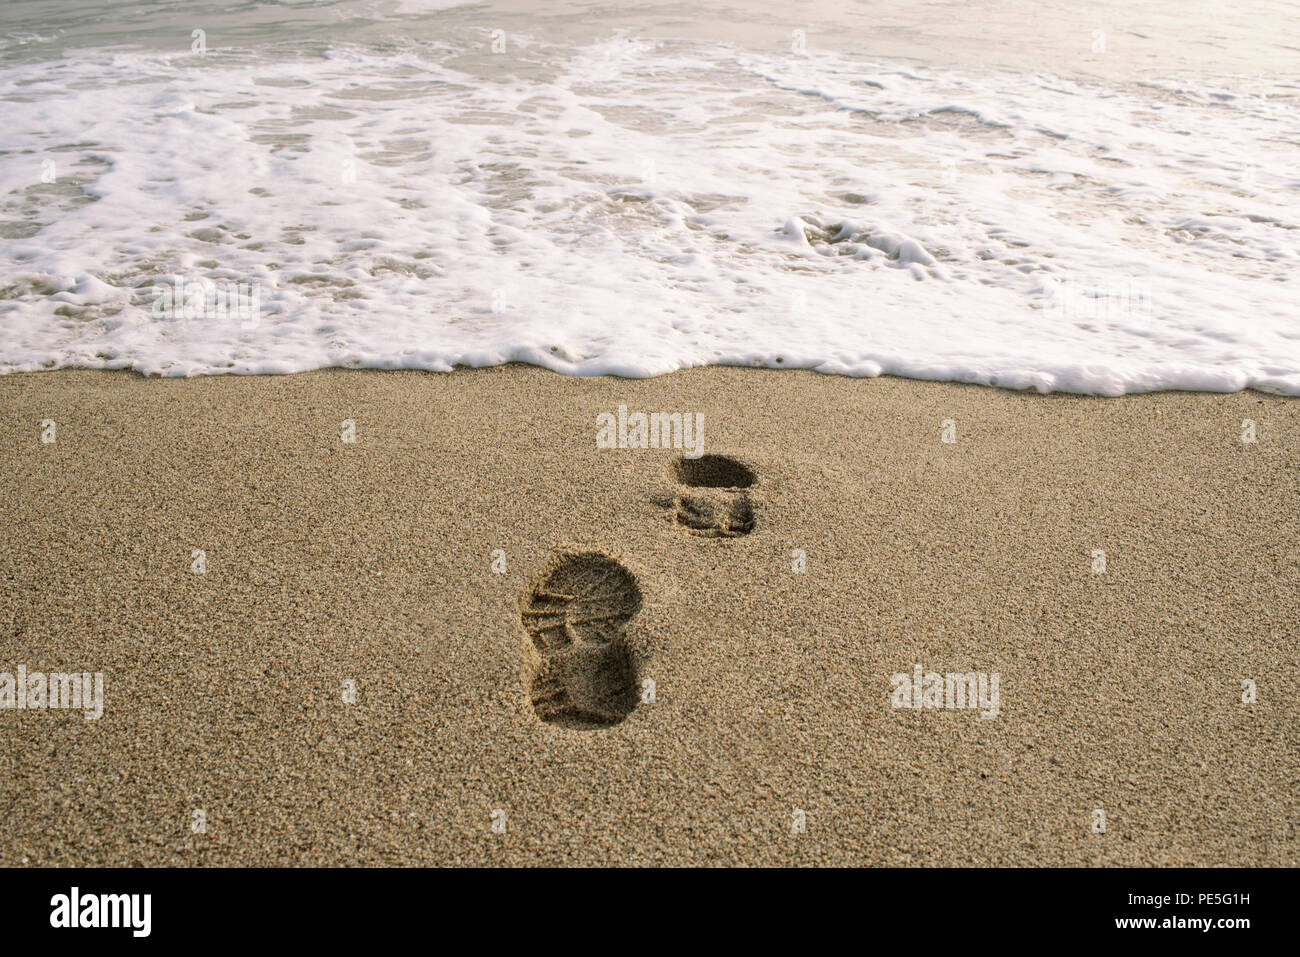 Swallowed by the sea. Conceptual image of shoe footprints in sand. Punta Hermosa, Peru. Jul 2018 - Stock Image